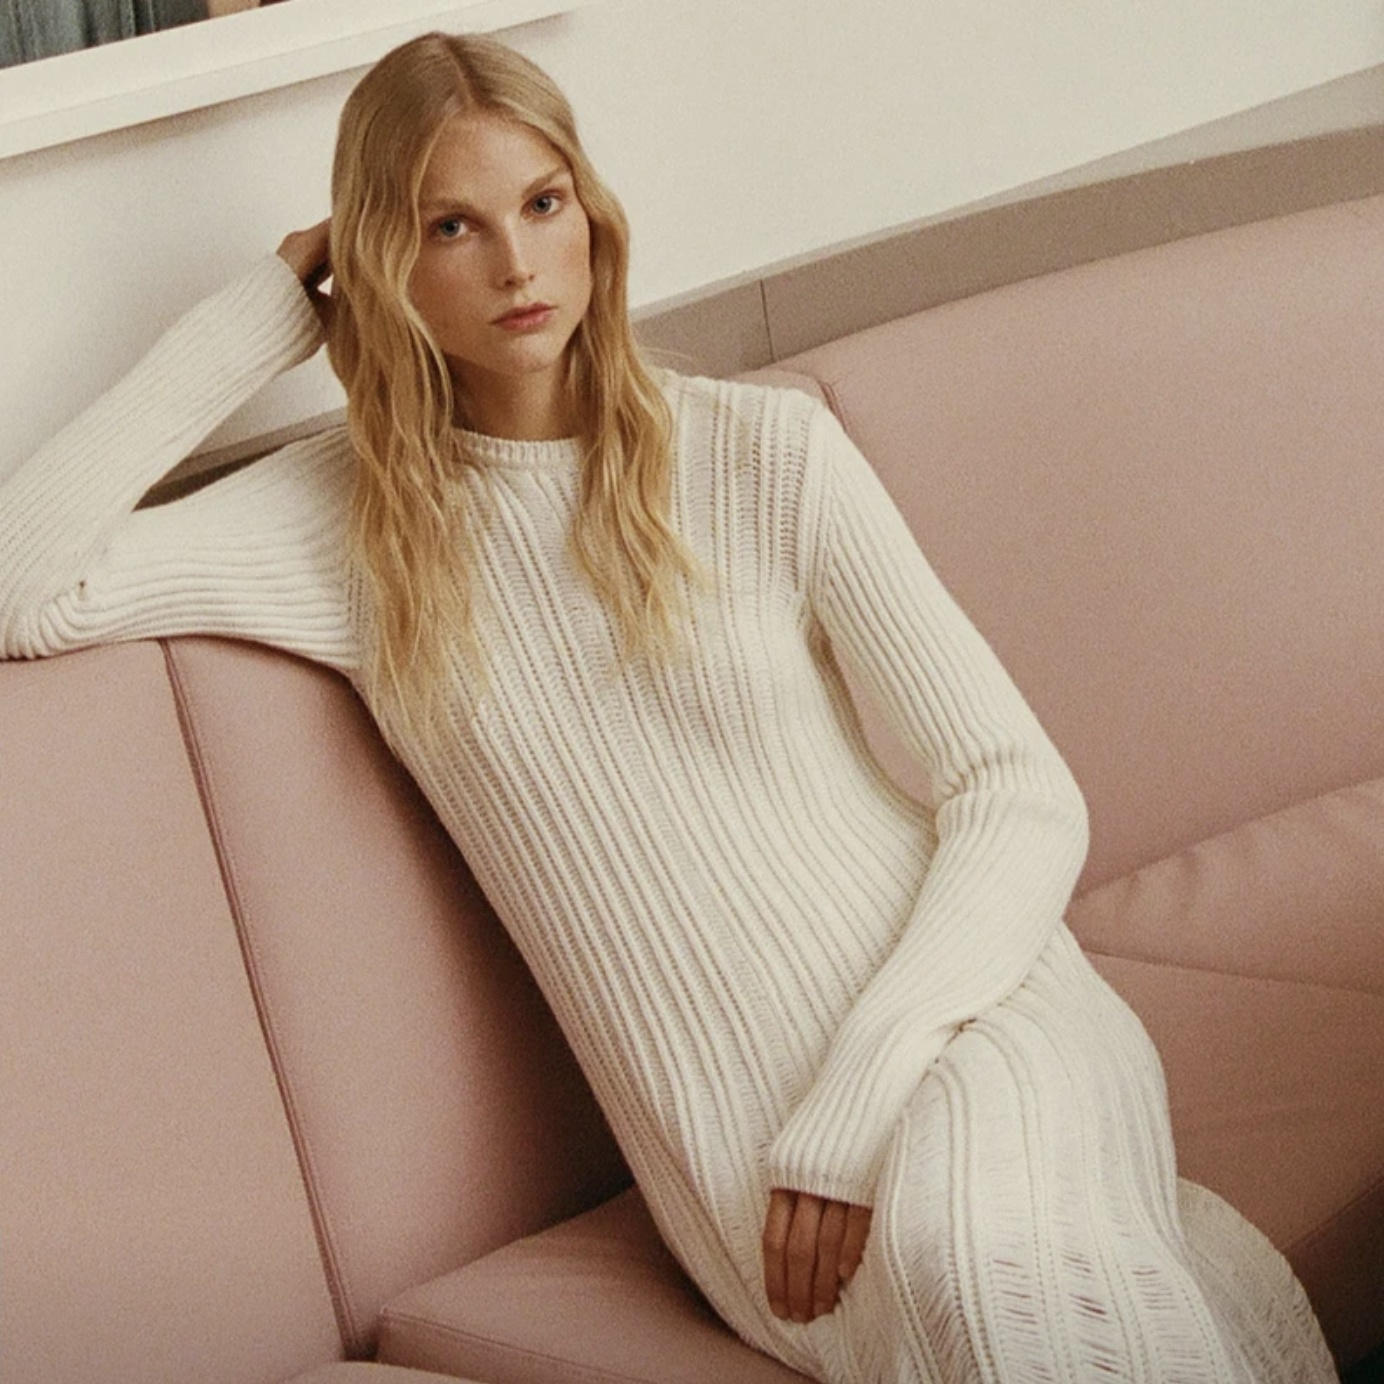 The Fall Trends From Matchesfashion That We're Most Excited About